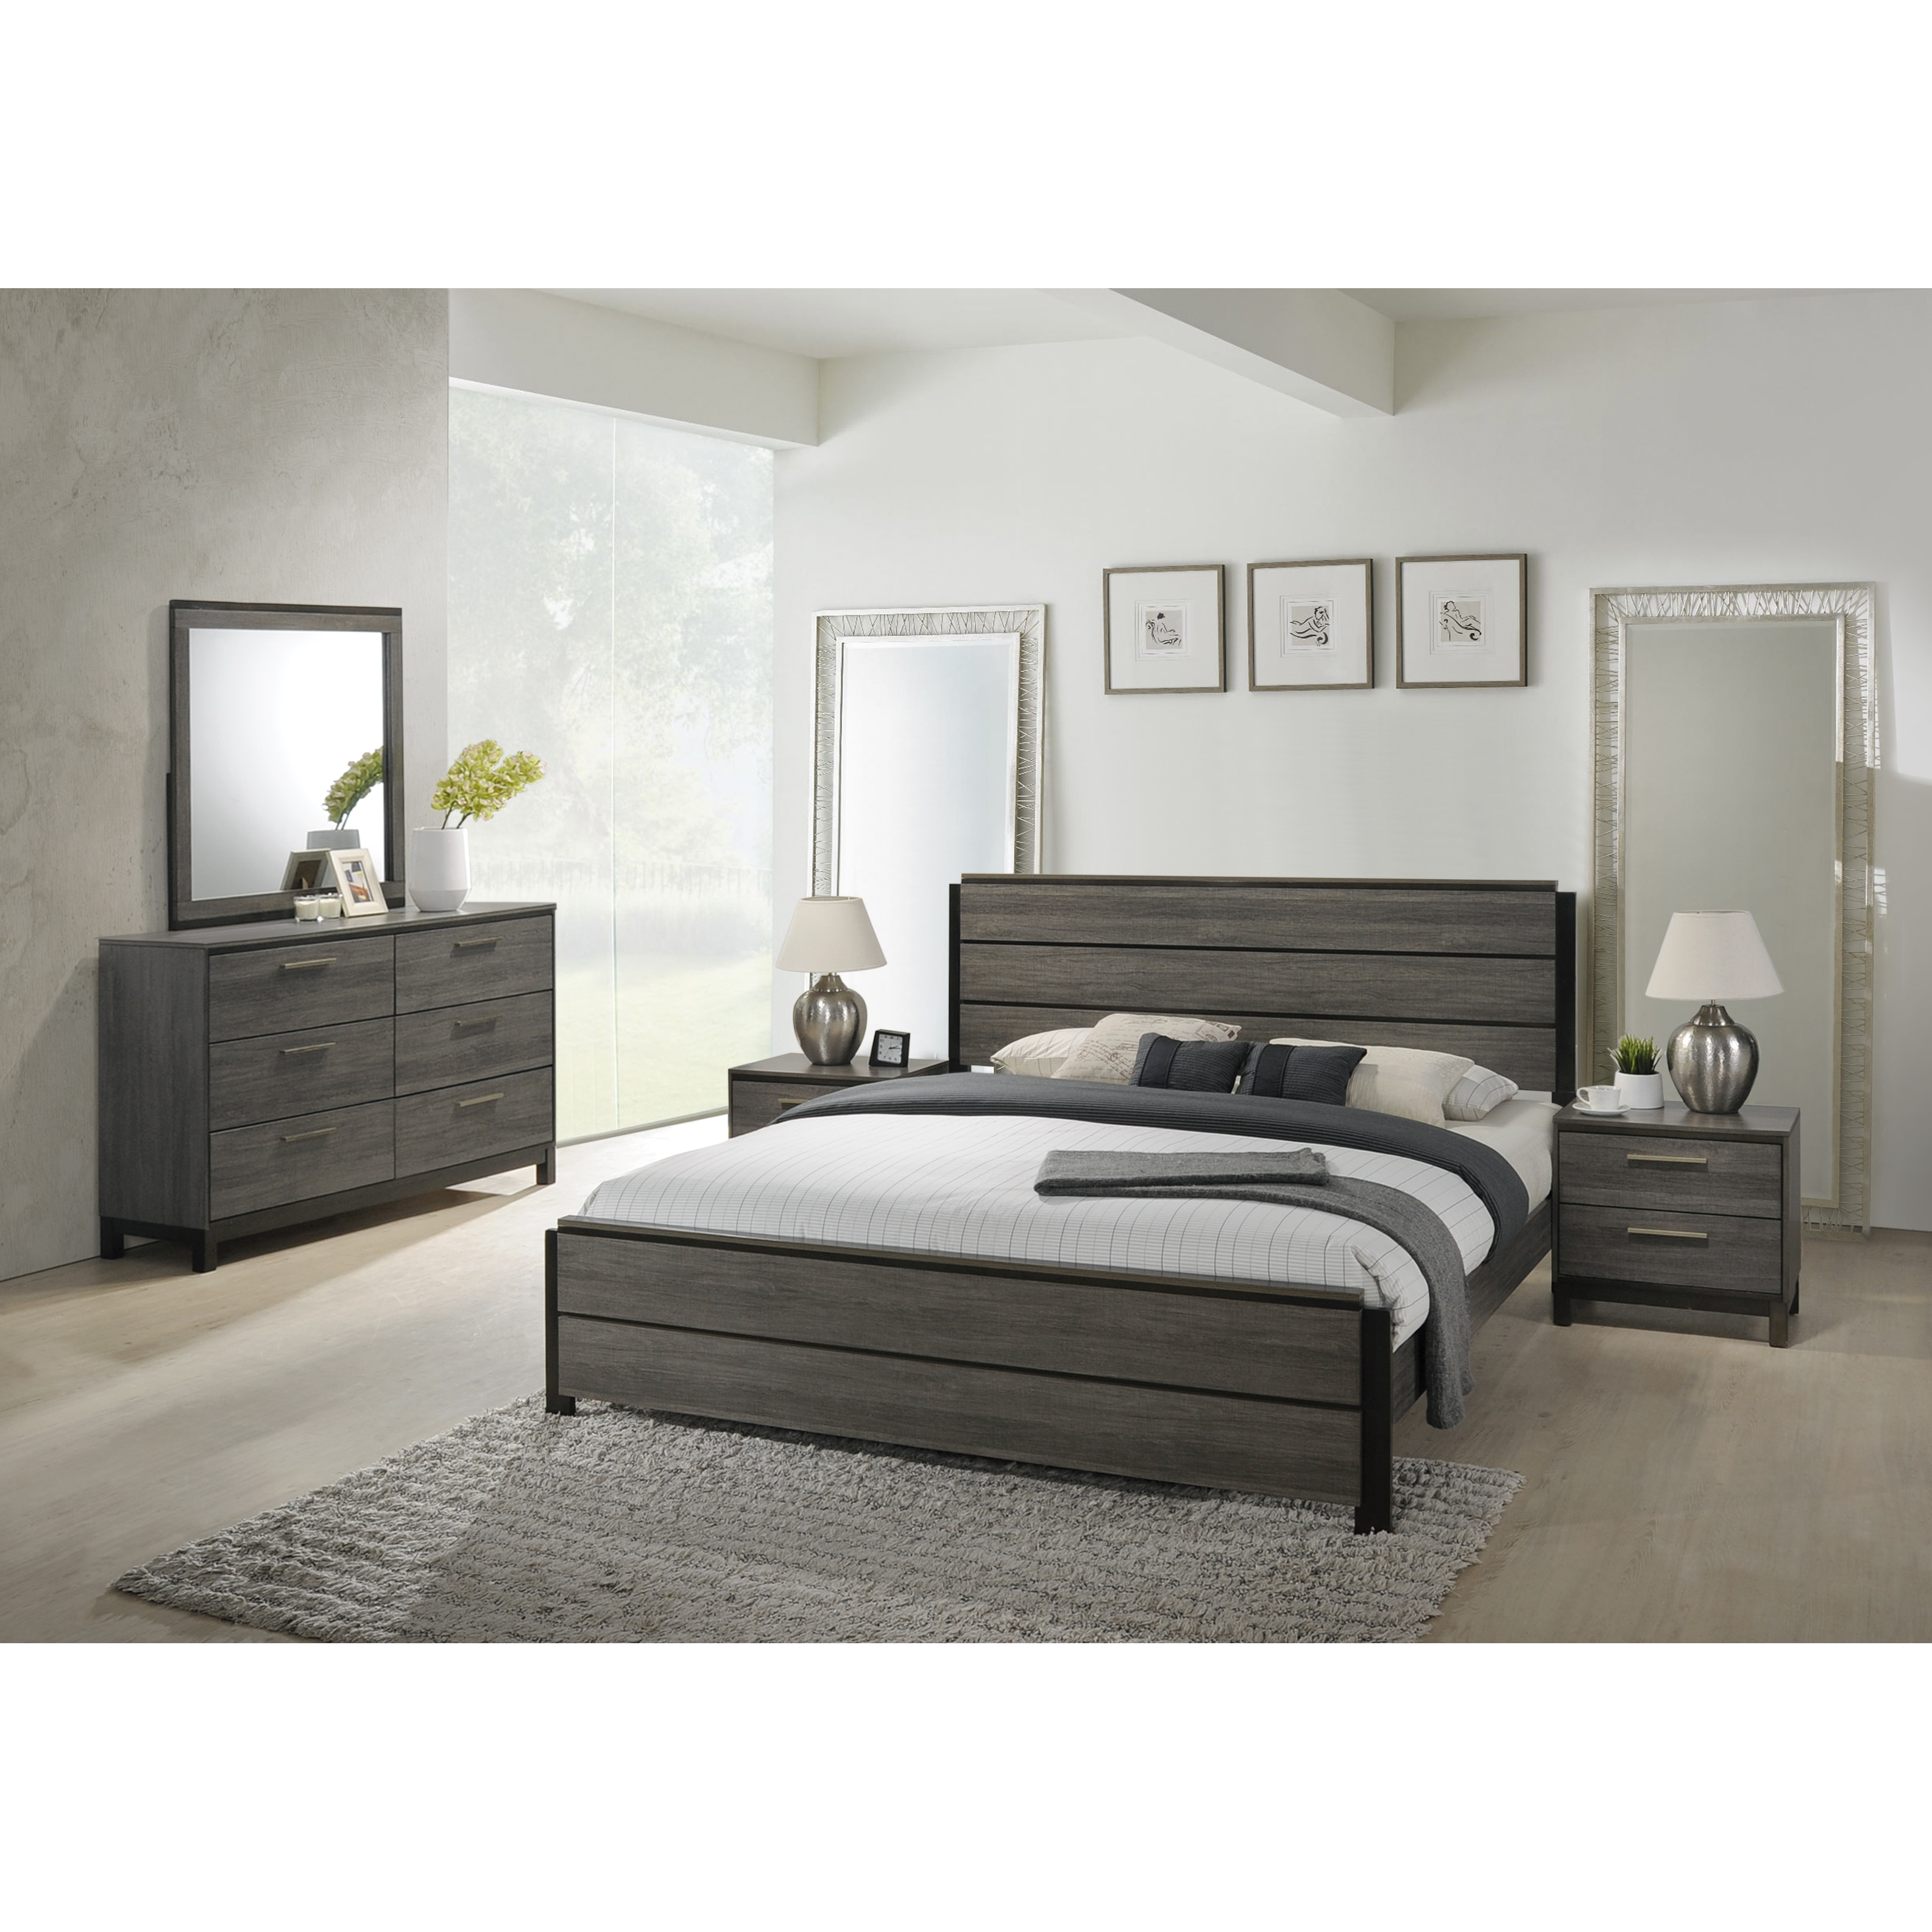 a16c6bec4 Ioana 187 Antique Grey Finish Wood Bed Room Set, King Size Bed, Dresser,  Mirror, 2 Night Stands